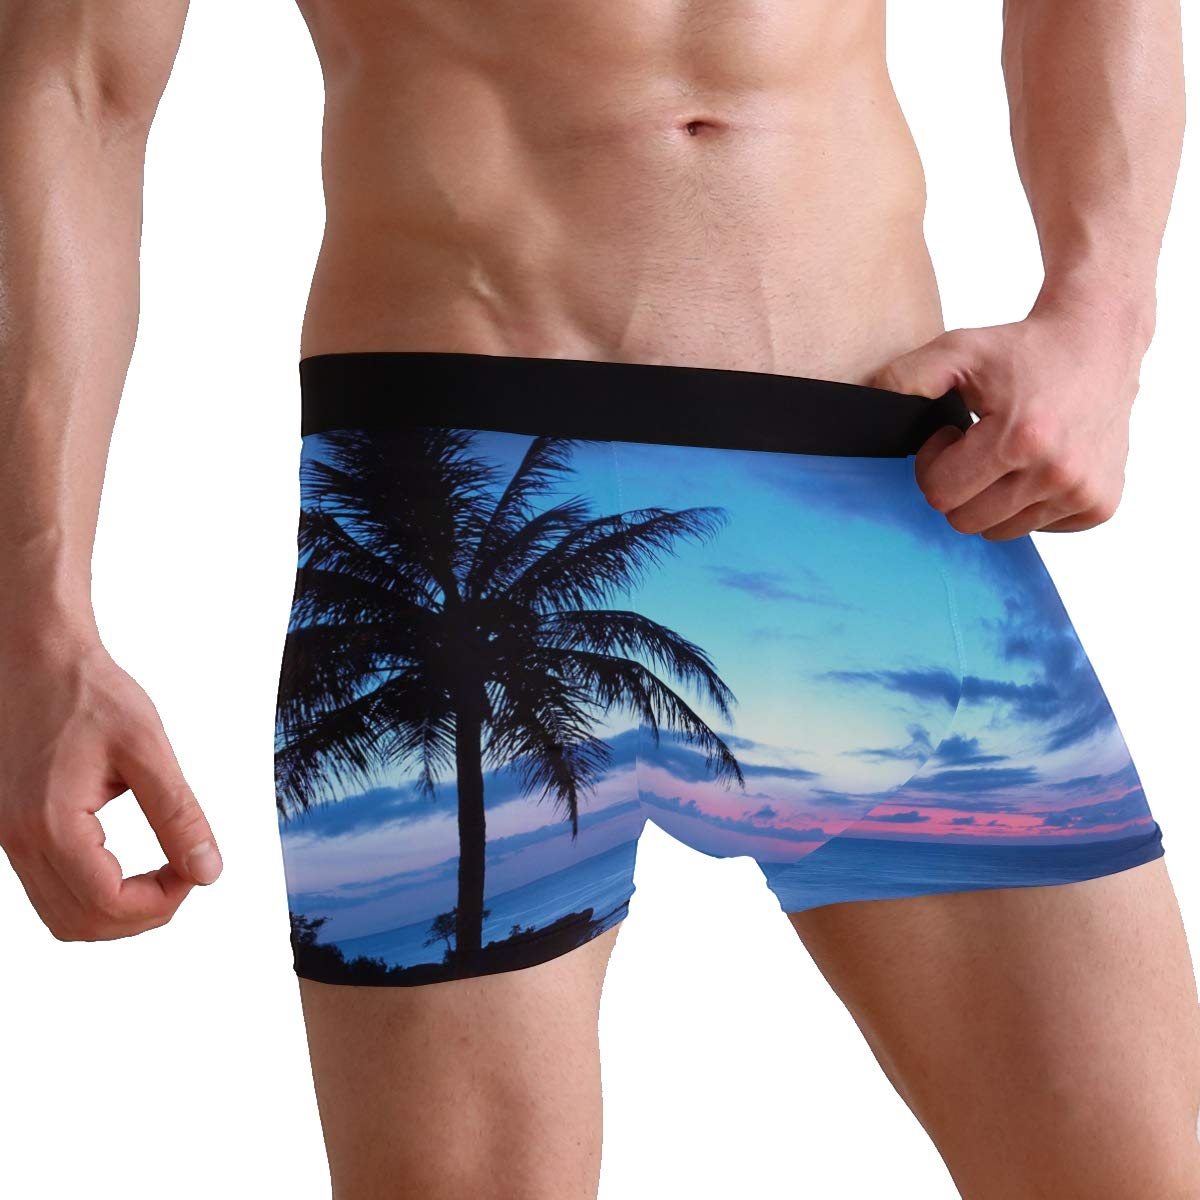 S-XL Abbylife Beach Palm Tree Mens Underwear Boxer Breathable Underpants Briefs